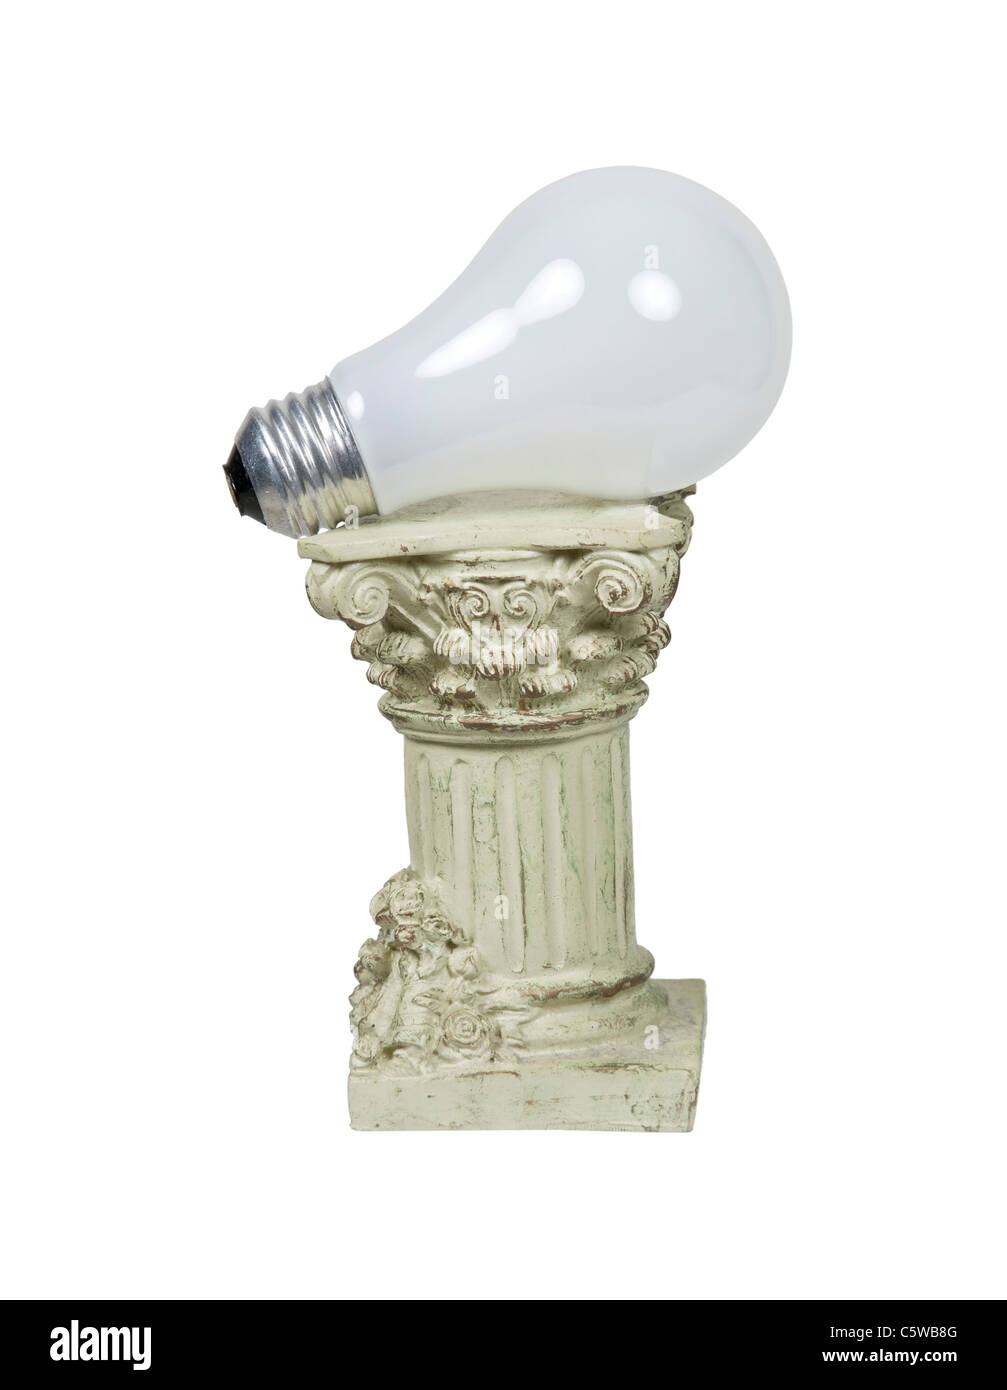 Retro power shown by a round light bulb on a stone formal pedestal for raising up an item of importance - path included - Stock Image